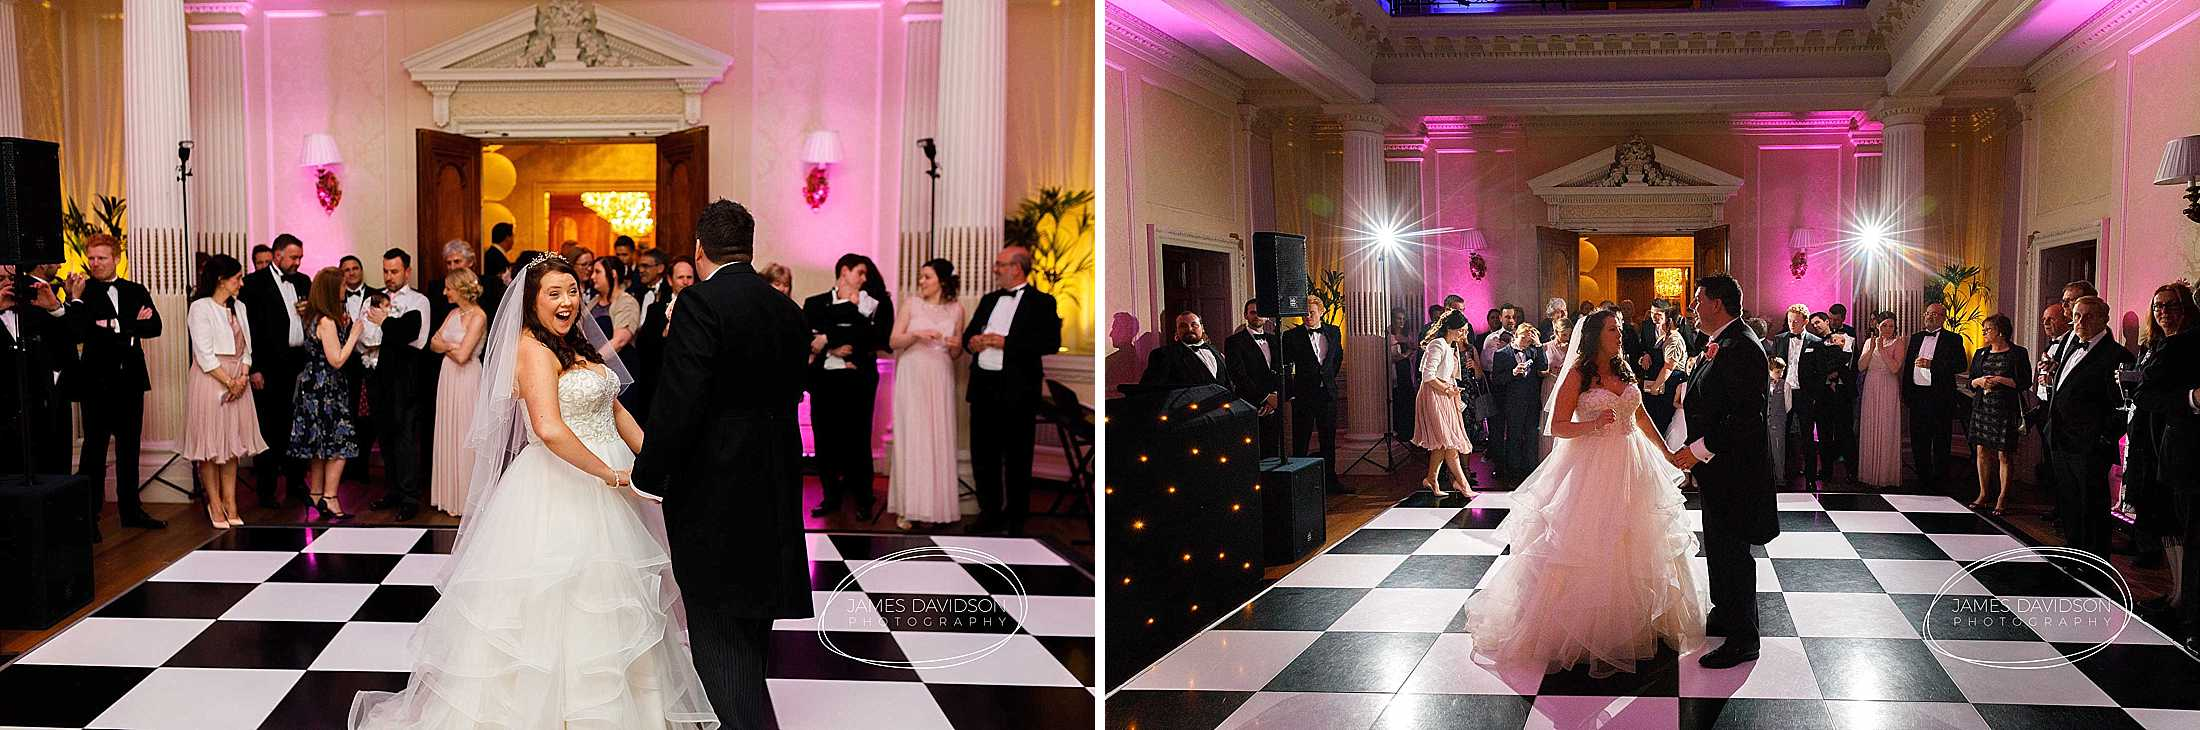 hedsor-house-wedding-photographer-117